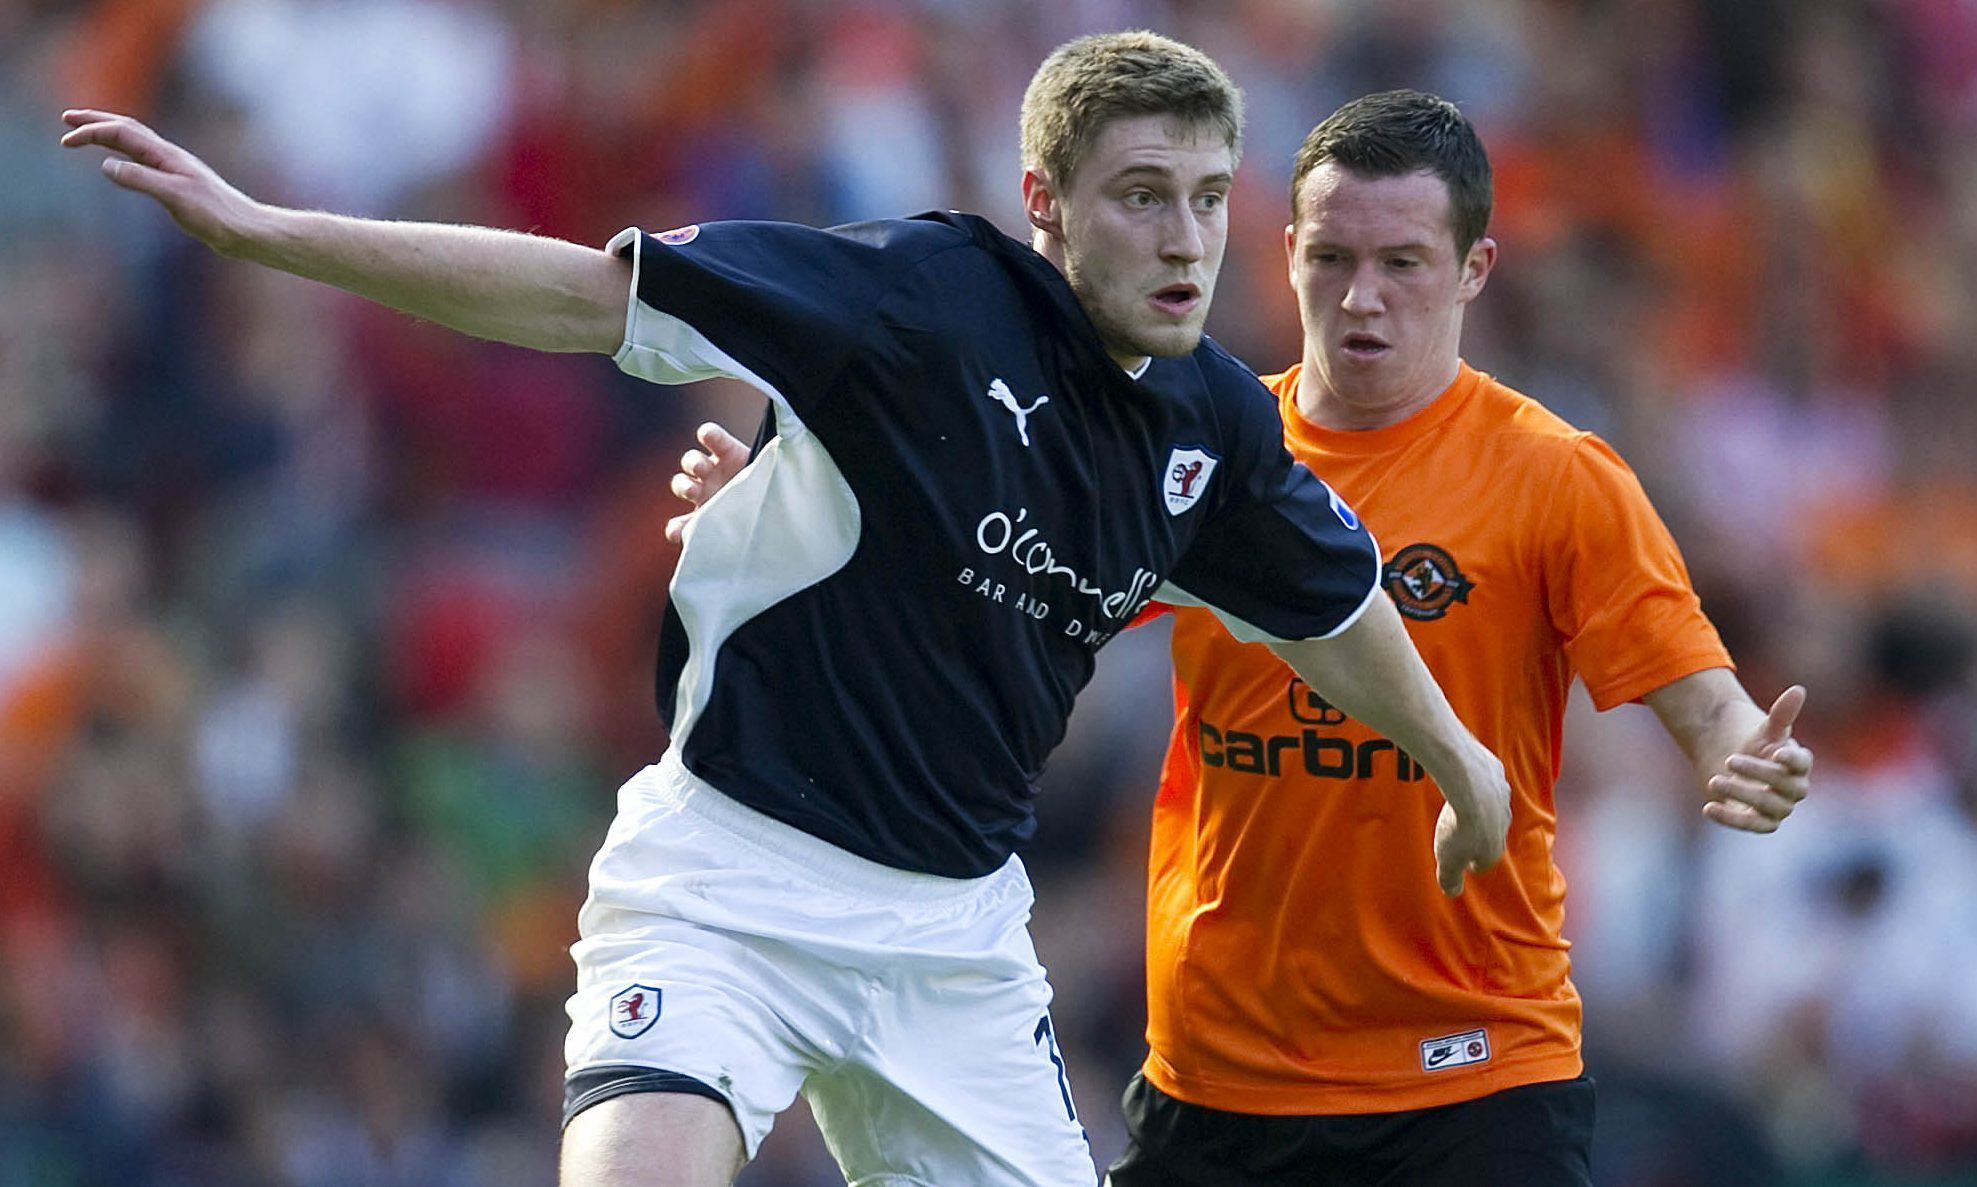 Iain Williamson (left) holds off Danny Swanson in the 2010 Scottish Cup semi-final between Raith Rovers and Dundee United.